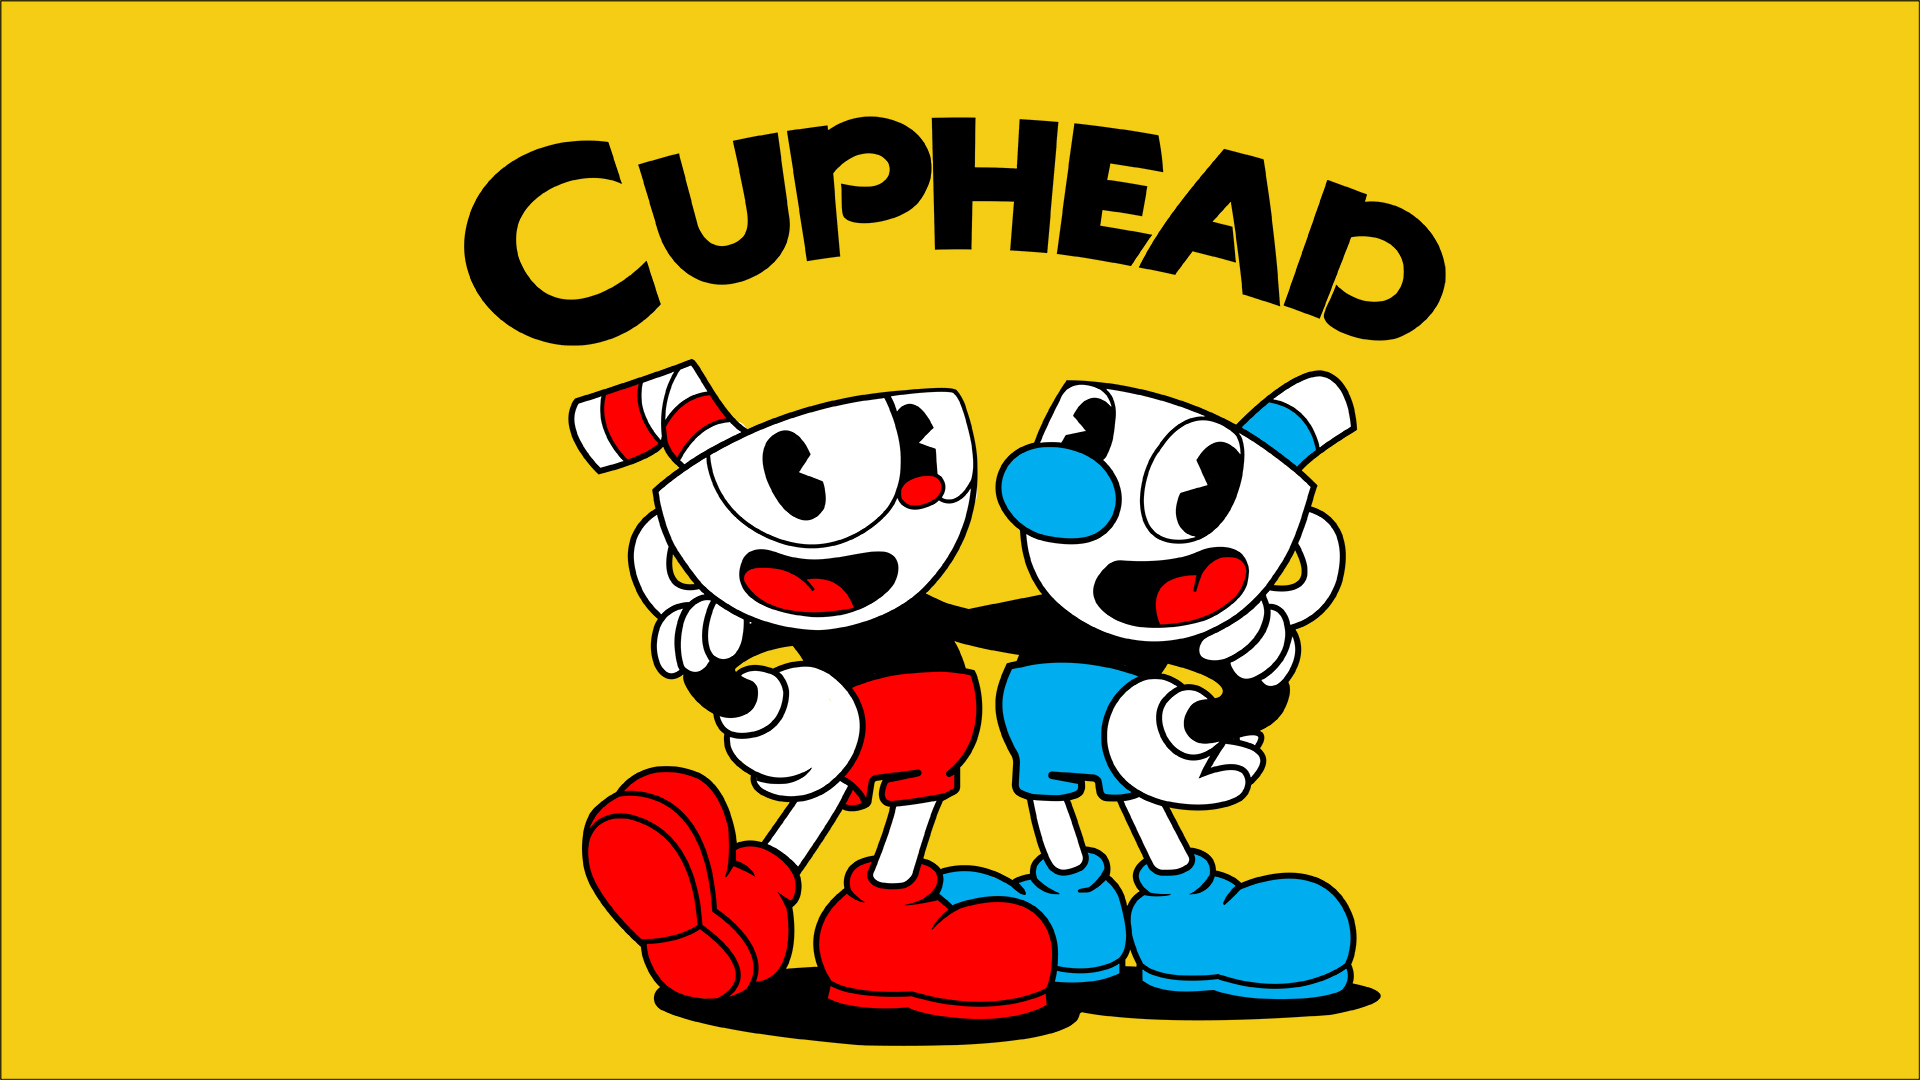 Cuphead Wallpaper 1920x1080 Revised by